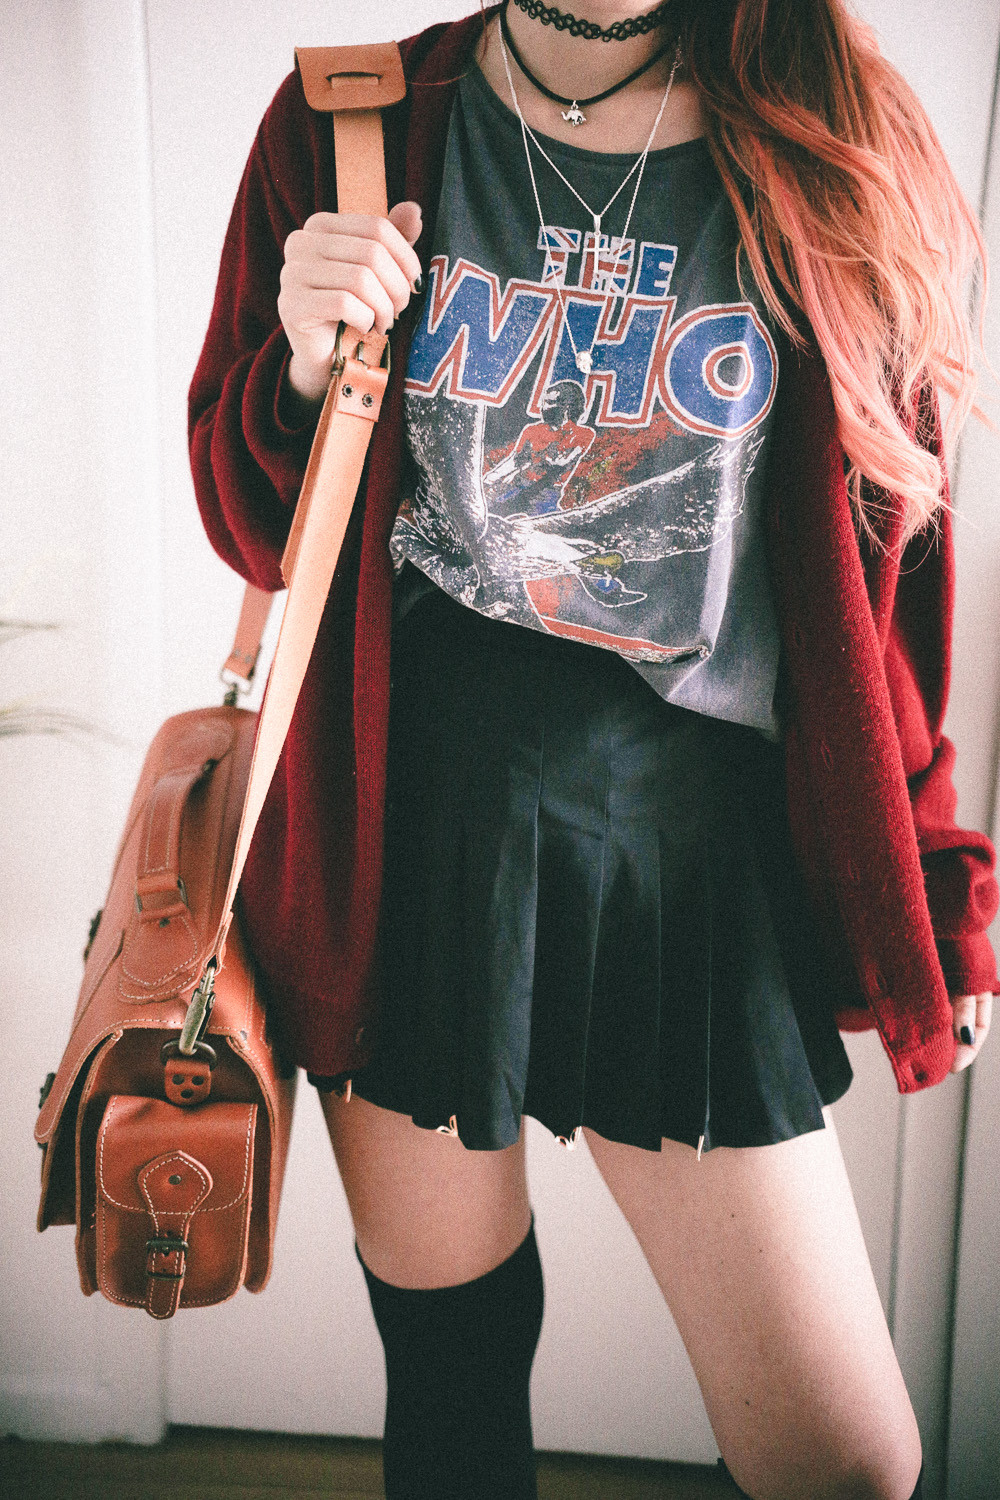 Le Happy wearing The Who t-shirt and messenger bag